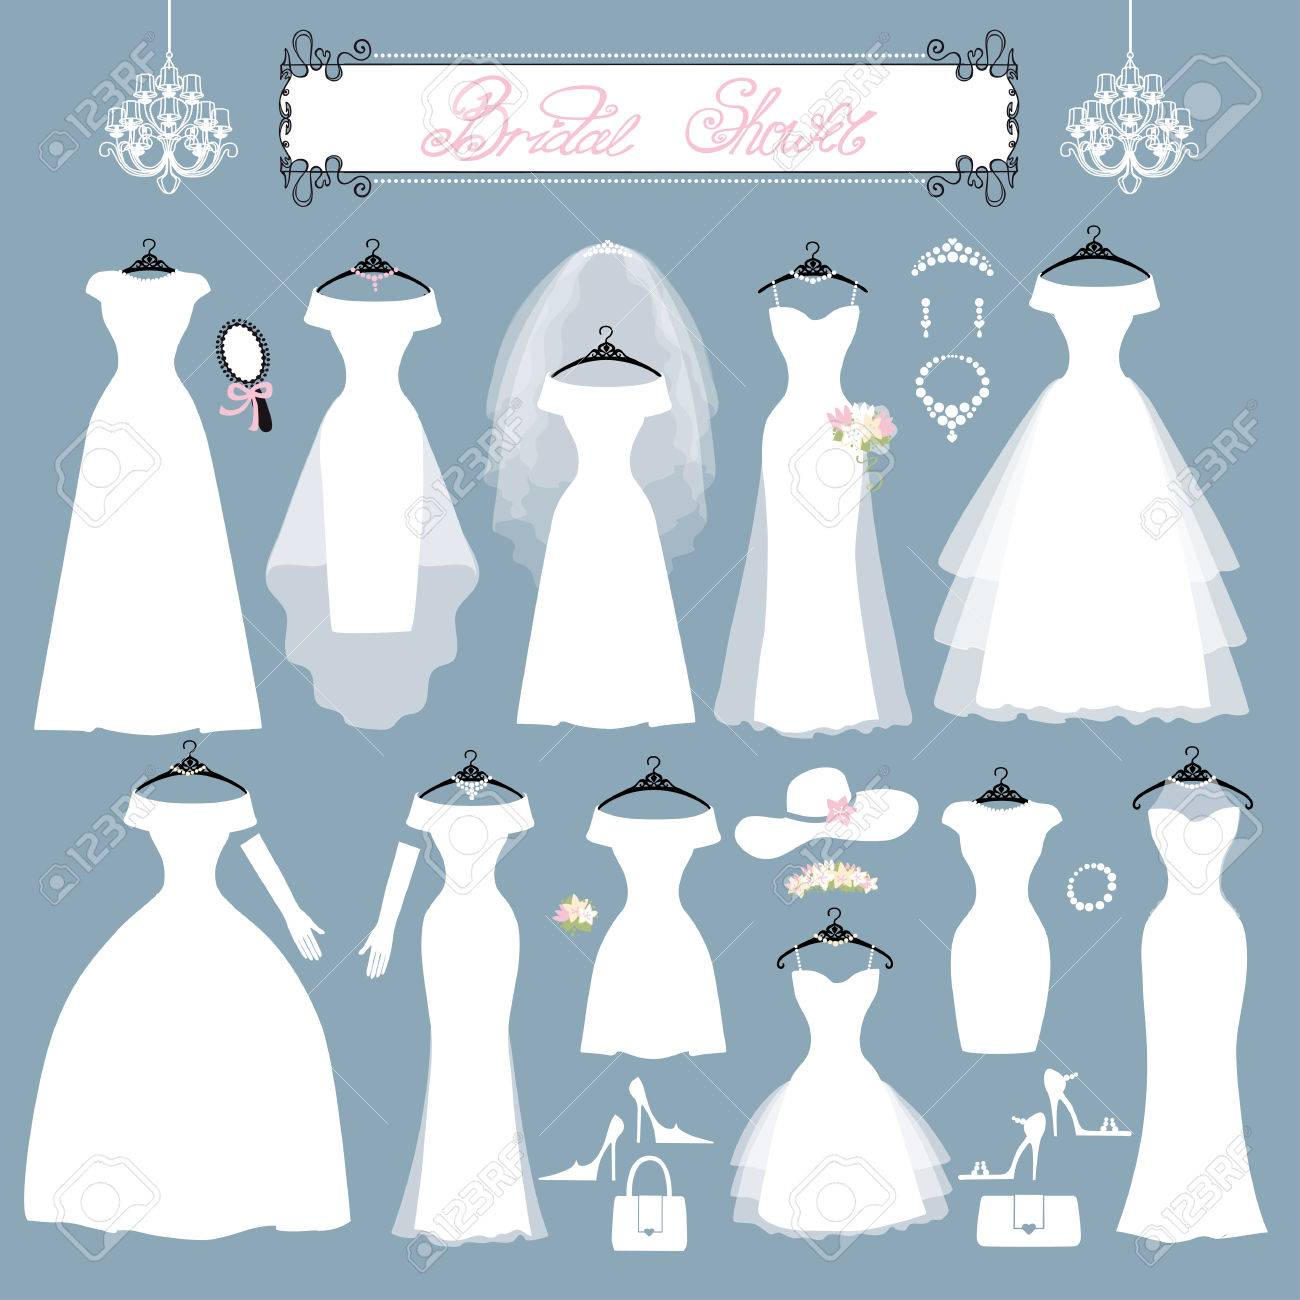 Wedding Dresses In Different Styles.Fashion Bride Dress Made ...